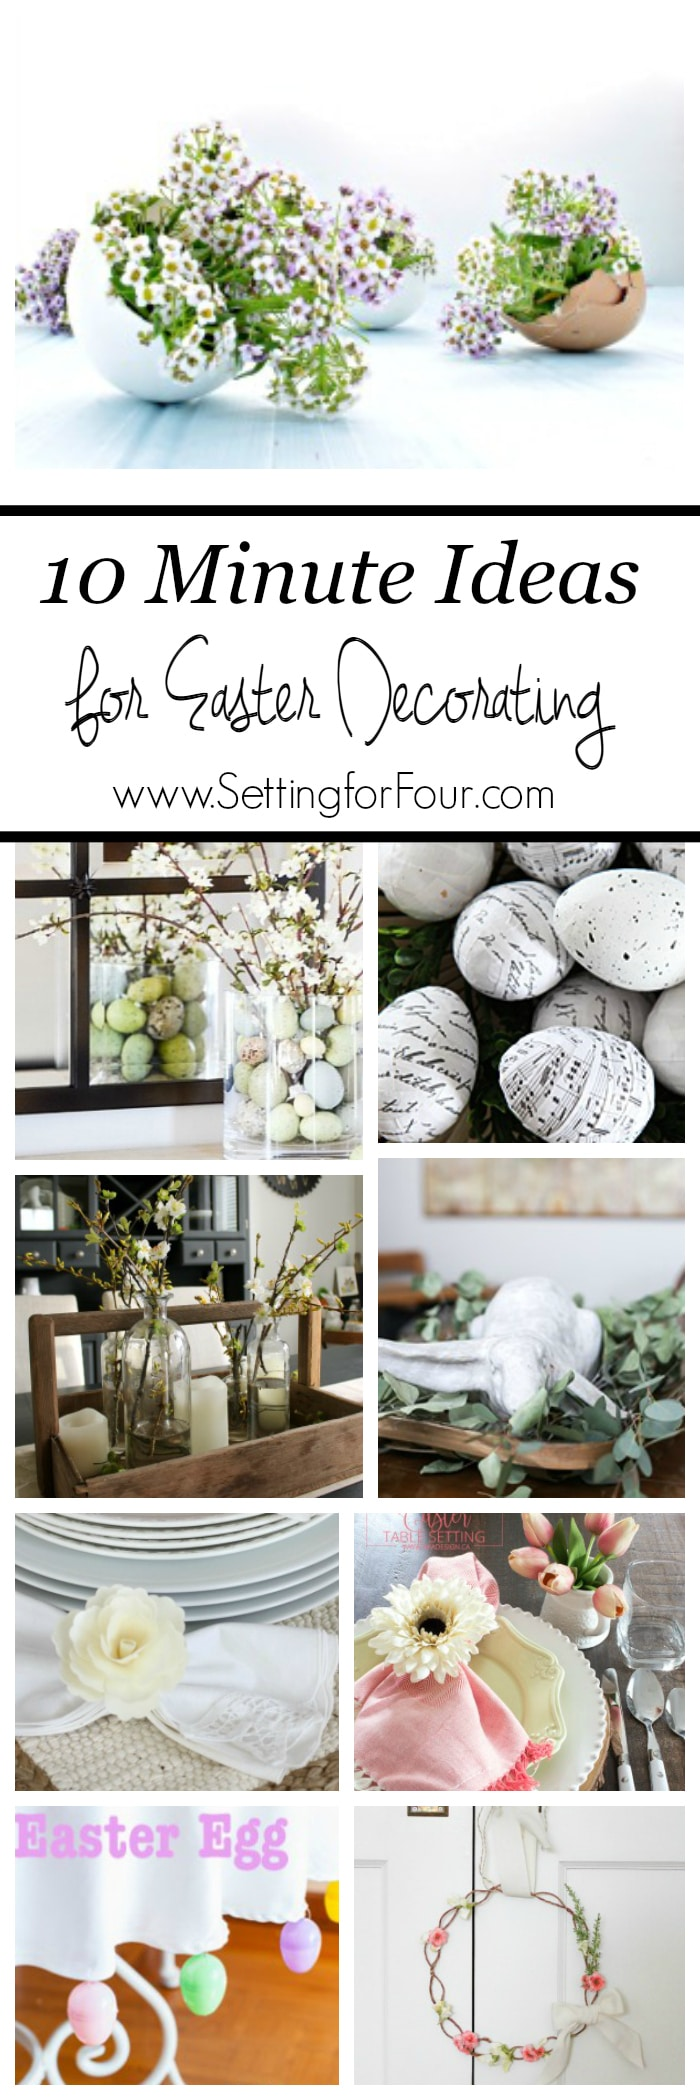 Quick and Easy Easter Decorating Ideas. Decorate your home for Spring in a jiffy! See all the beautiful DIY ideas at www.settingforfour.com